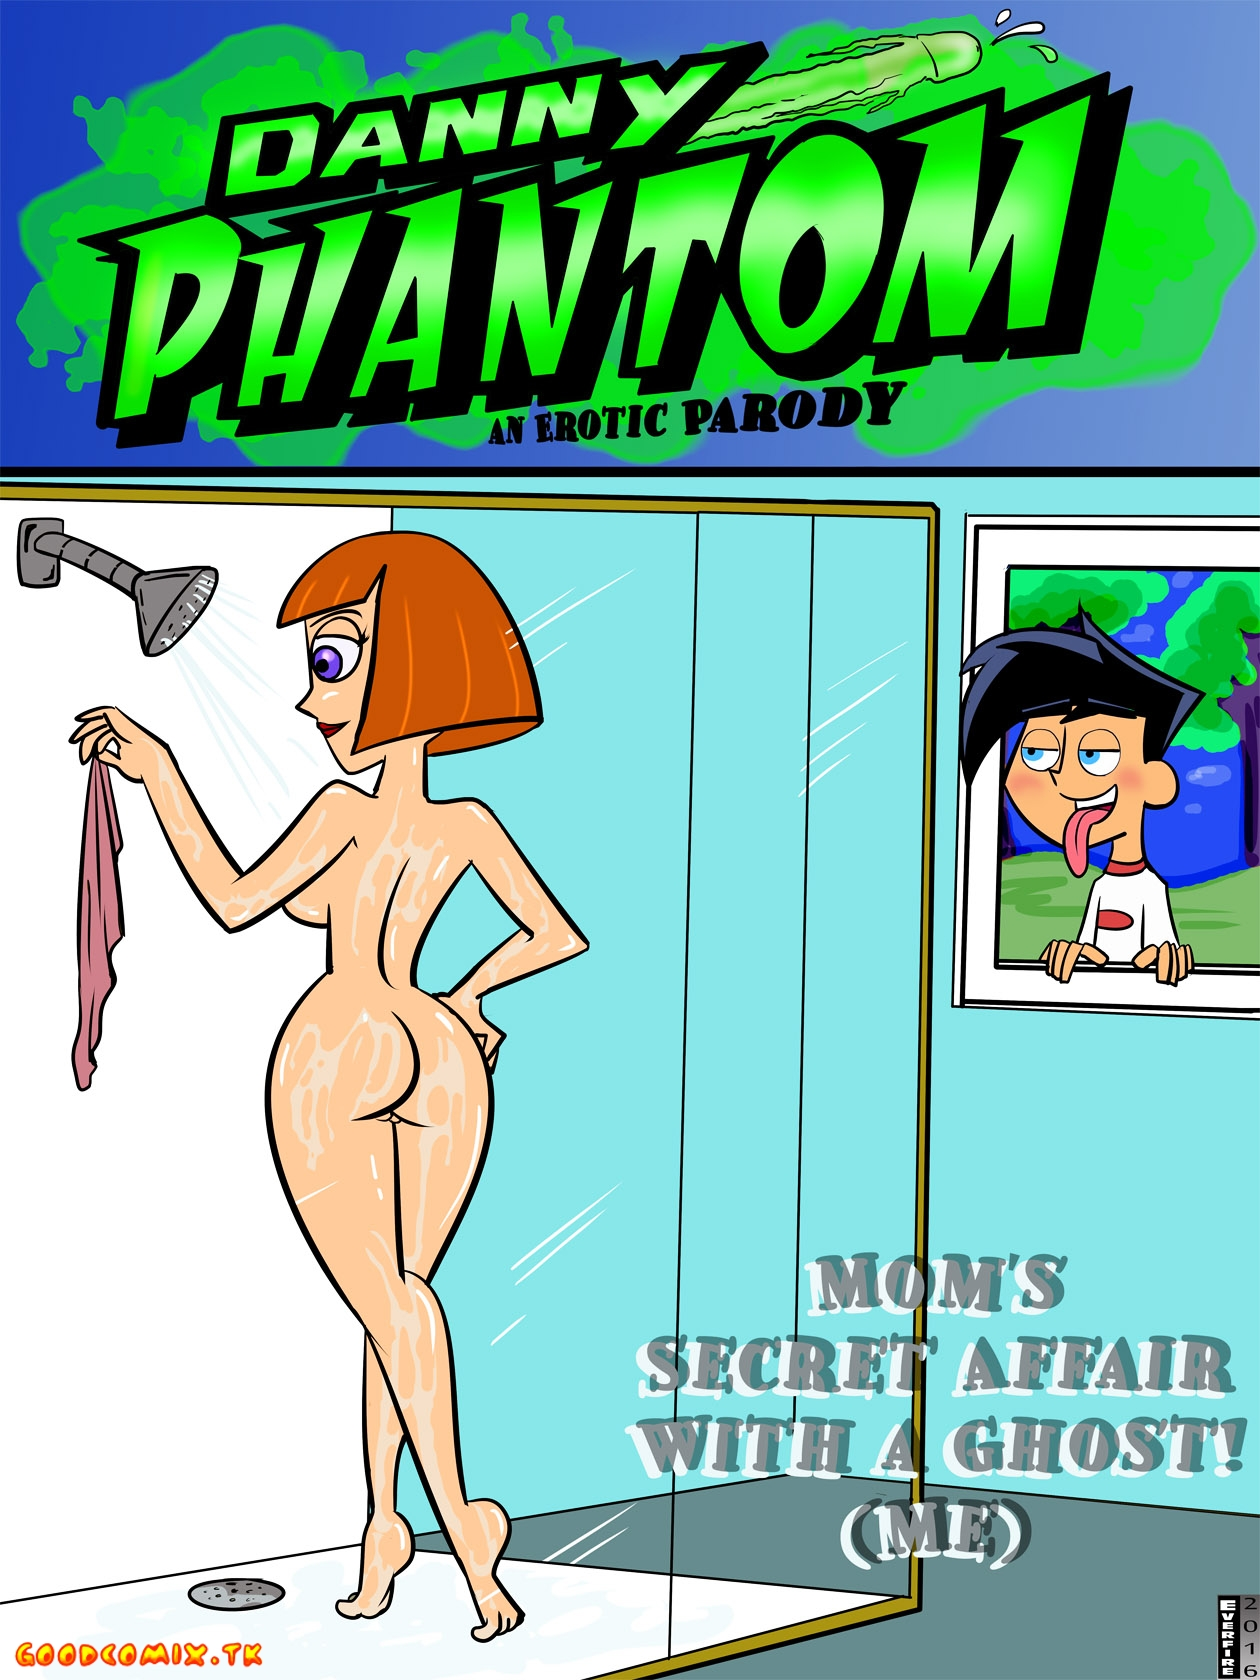 Goodcomix.tk Danny Phantom - [Everfire] - An Erotic Parody Part 1